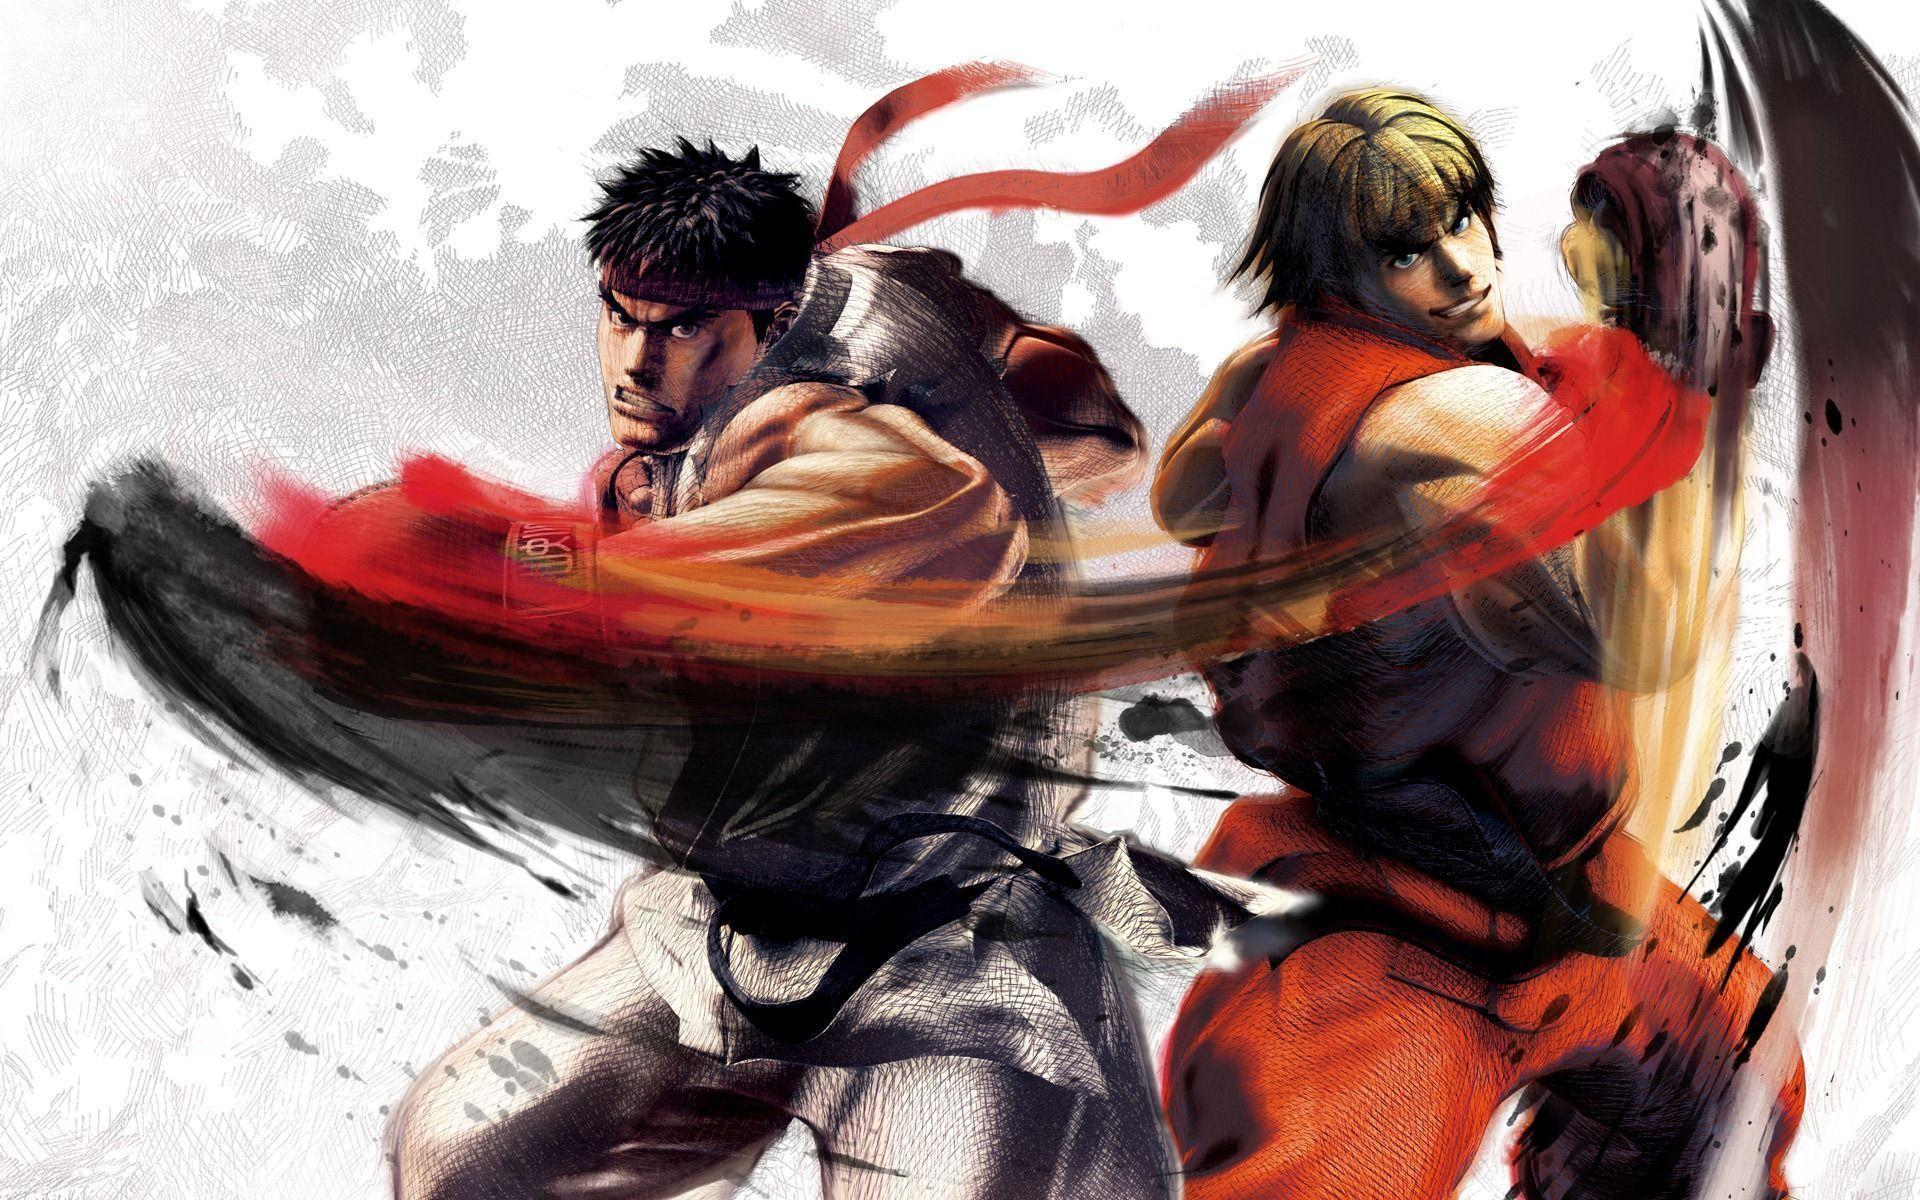 shadowloo street fighter wallpaper - photo #28